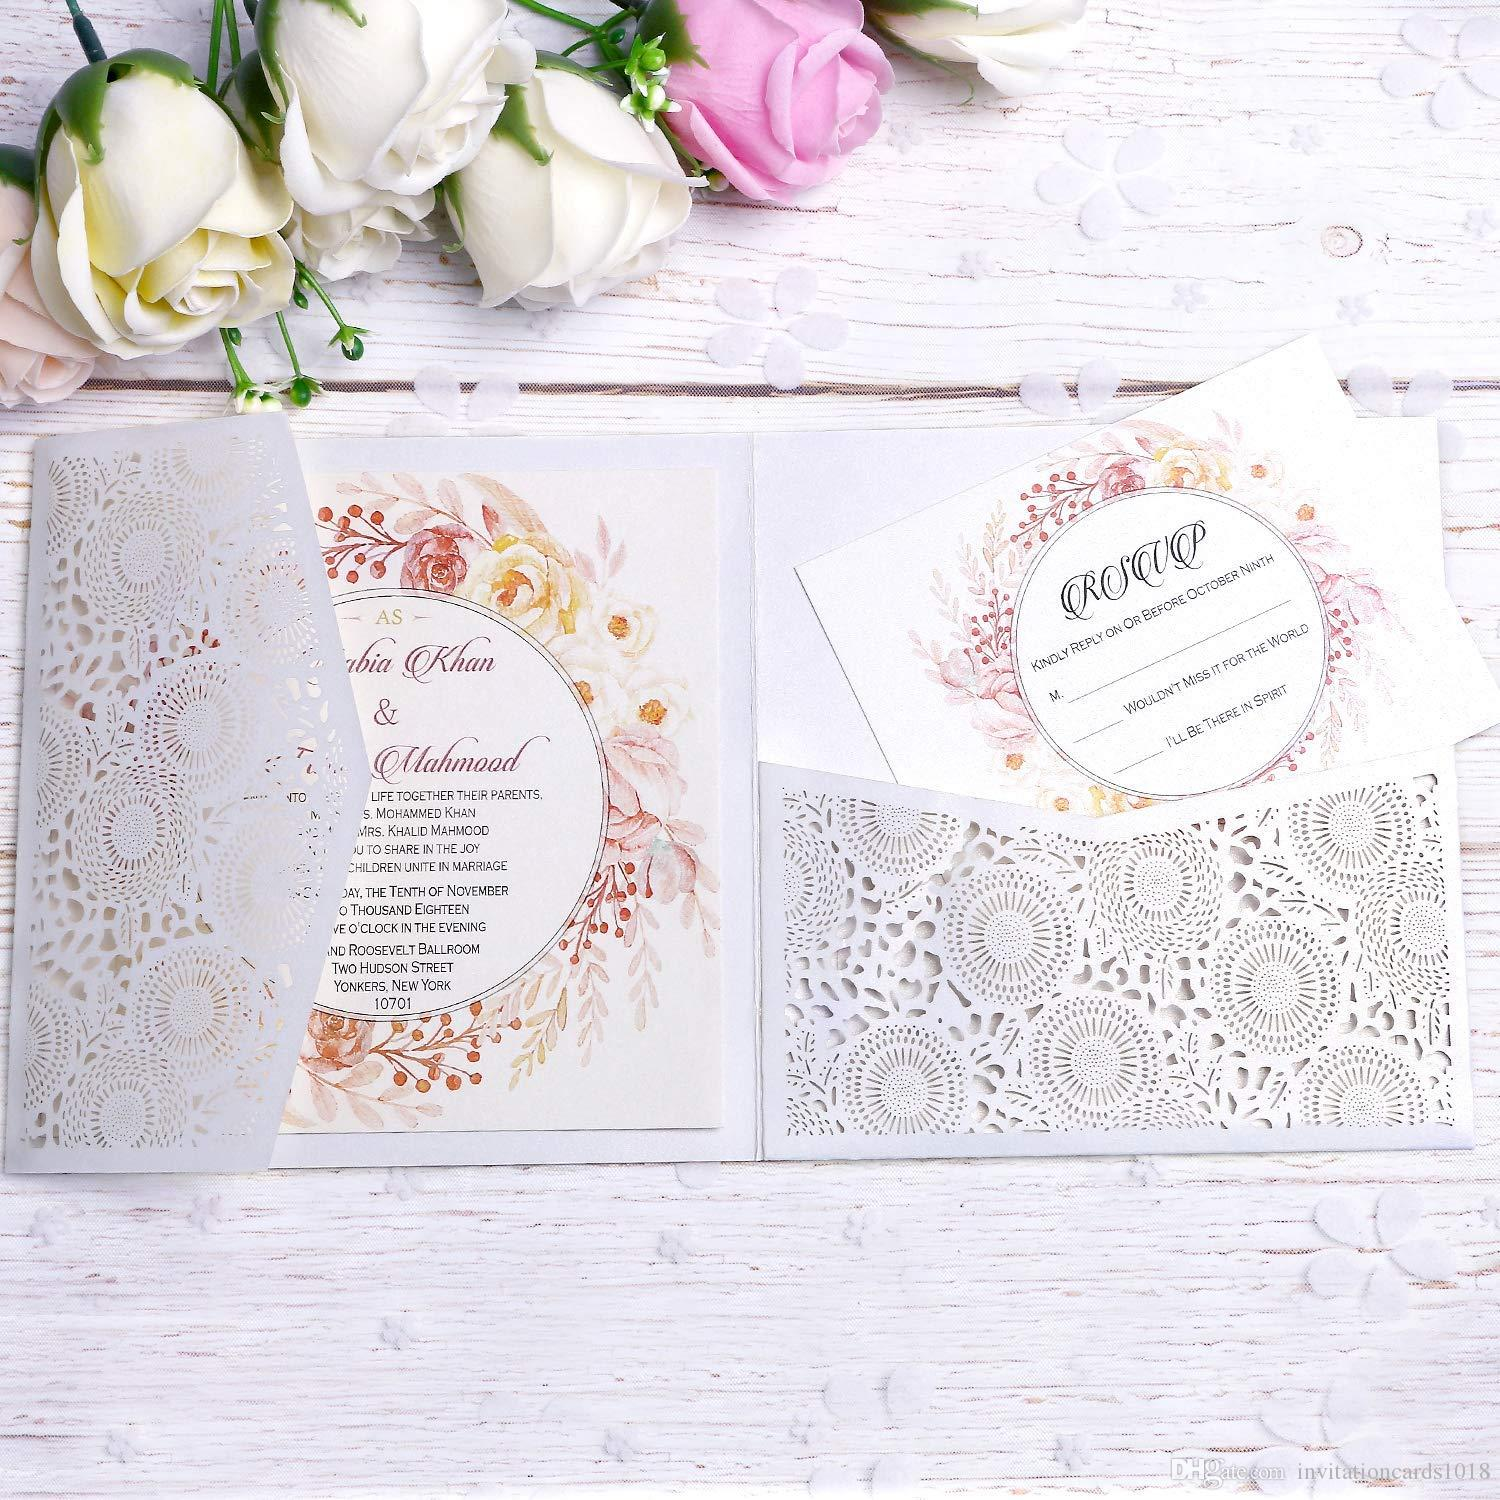 New White Square Wedding Invitation Cards With Belt For Birthday Engagement Greeting Invitations Invite Free Rsvp Online: Blank Wedding Invitation Cards At Websimilar.org